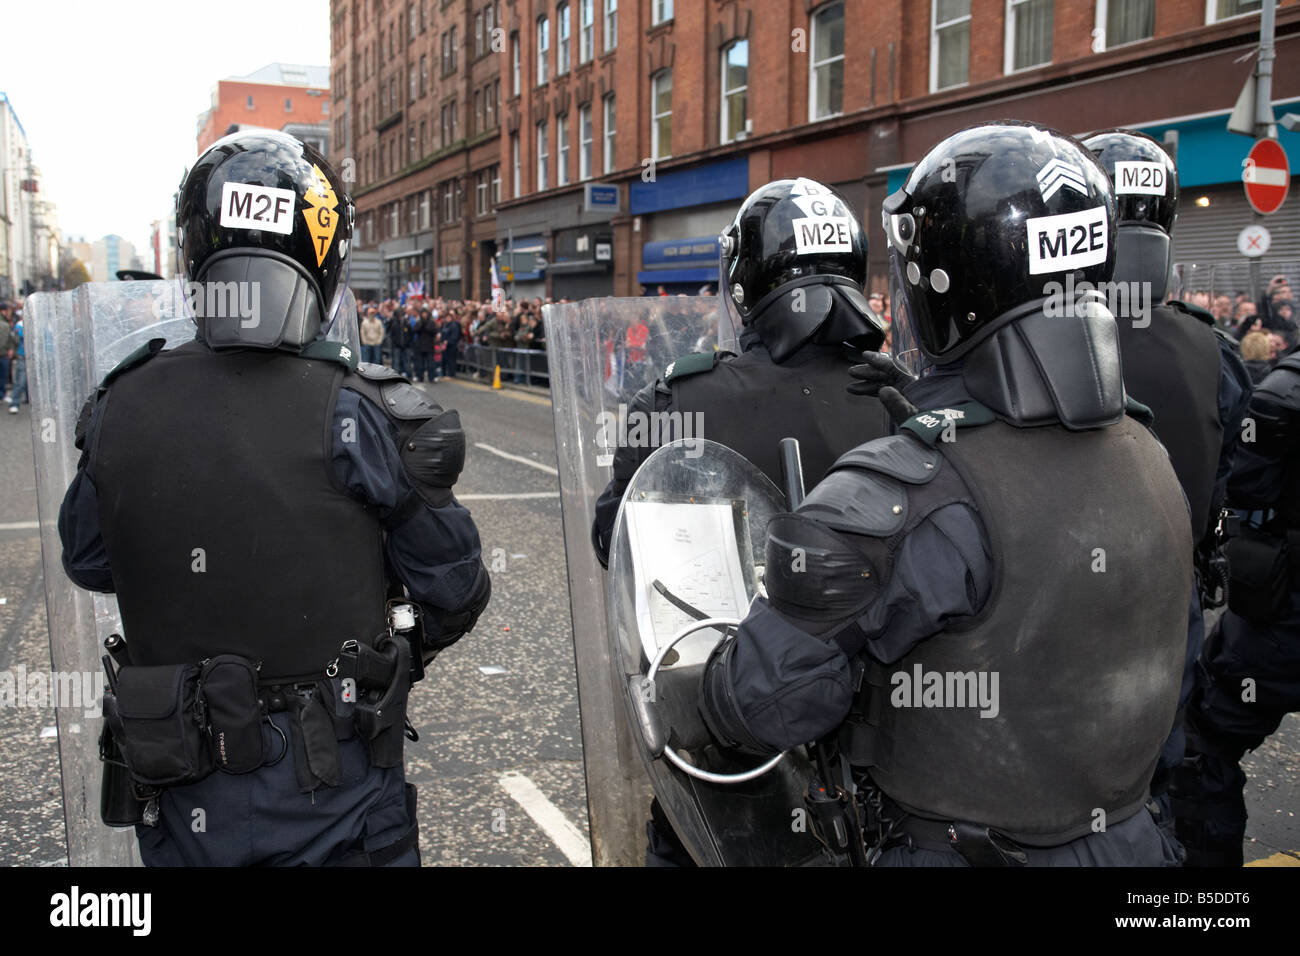 PSNI Police Service of Northern Ireland riot control officers standing guarding during loyalist protest parade belfast - Stock Image